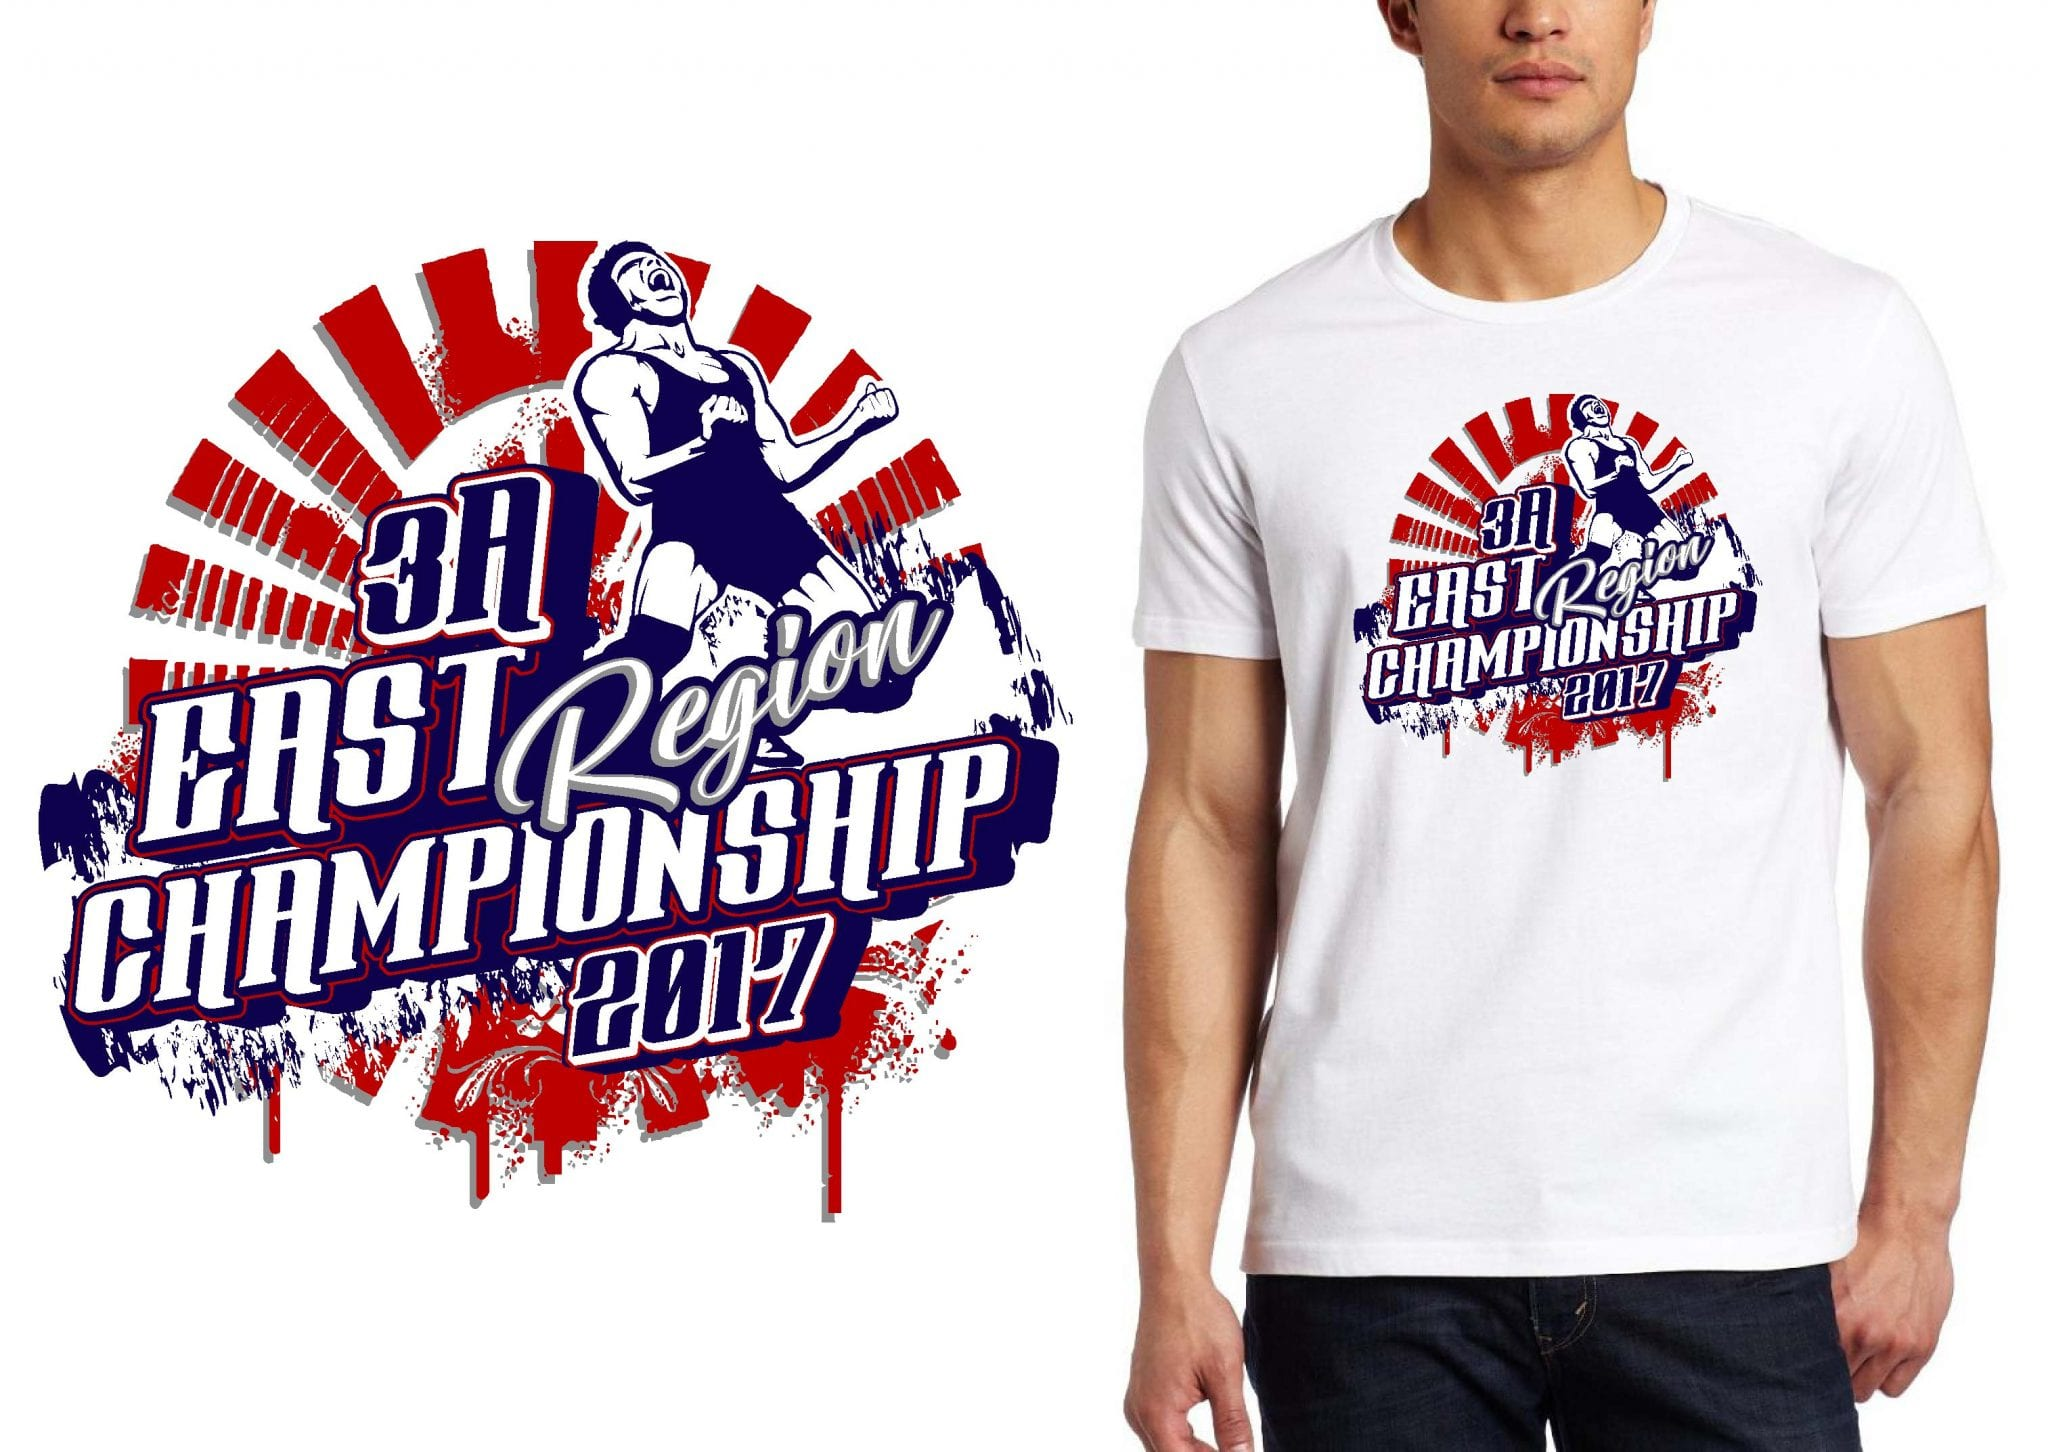 LOGO for 3A East Region Championship Wrestling T-SHIRT UrArtStudio